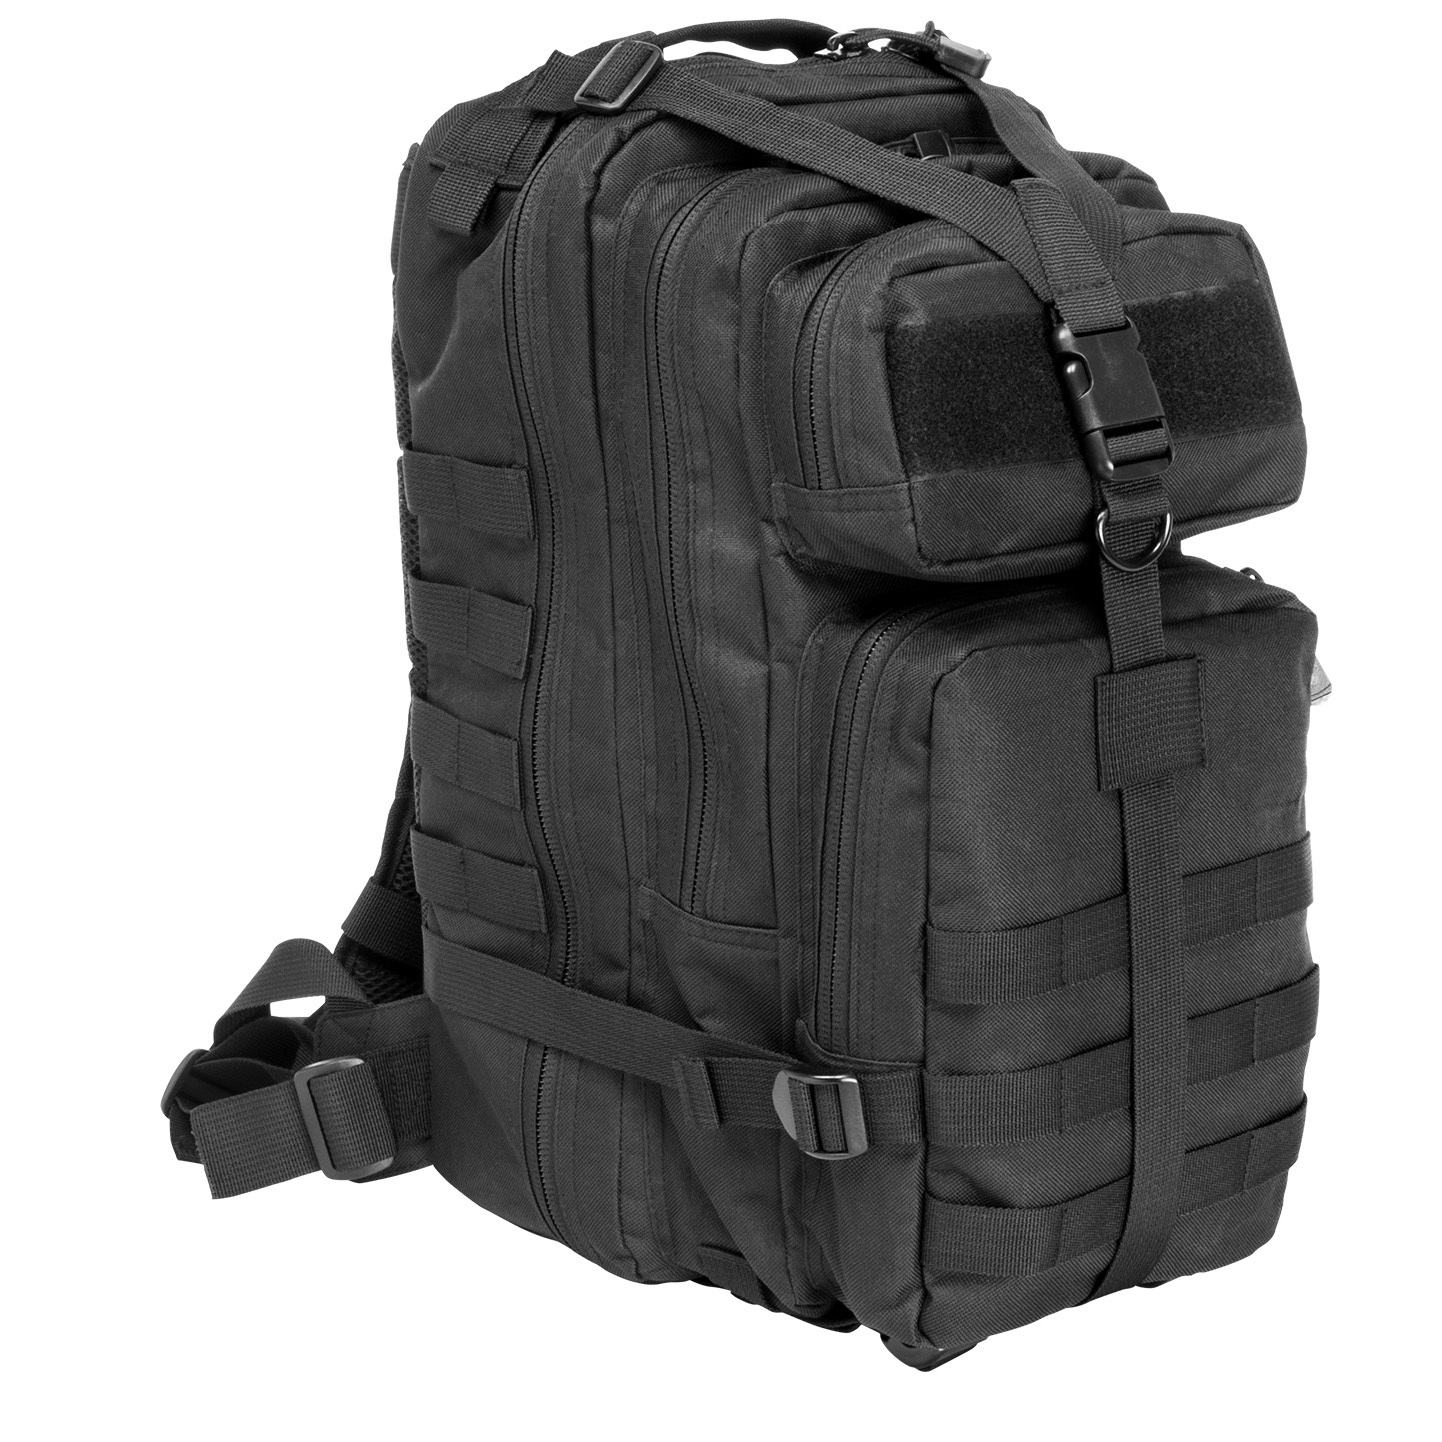 "VISM by NcSTAR Small Backpack shoulders the load, G.I.-style. Lightweight, easy to carry and comfortable to wear, with plenty of room for essentials. And, it has plenty of MOLLE straps for attachment. And it's hydration-compatible. It may be small in stature, but this Combat Pack shows up huge when you need it.The details:Rugged PVC construction 1,250 cu. in. of storage space in total Roomy 17 x 8 3/4 x 4 1/2"" main compartment with zipper compartment Middle compartment with internal pocket and 2 mesh pouches Top and bottom front compartments for extras. Bottom compartment has MOLLE straps Padded hydration bladder compartment (bladder not included) Adjustable compression straps help stabilize the load Adjustable padded shoulder straps with metal D-rings Adjustable sternum and waist straps Heavy-duty carry straps on top. Imported.State Color, as available in the Shopping Cart. - $34.99"